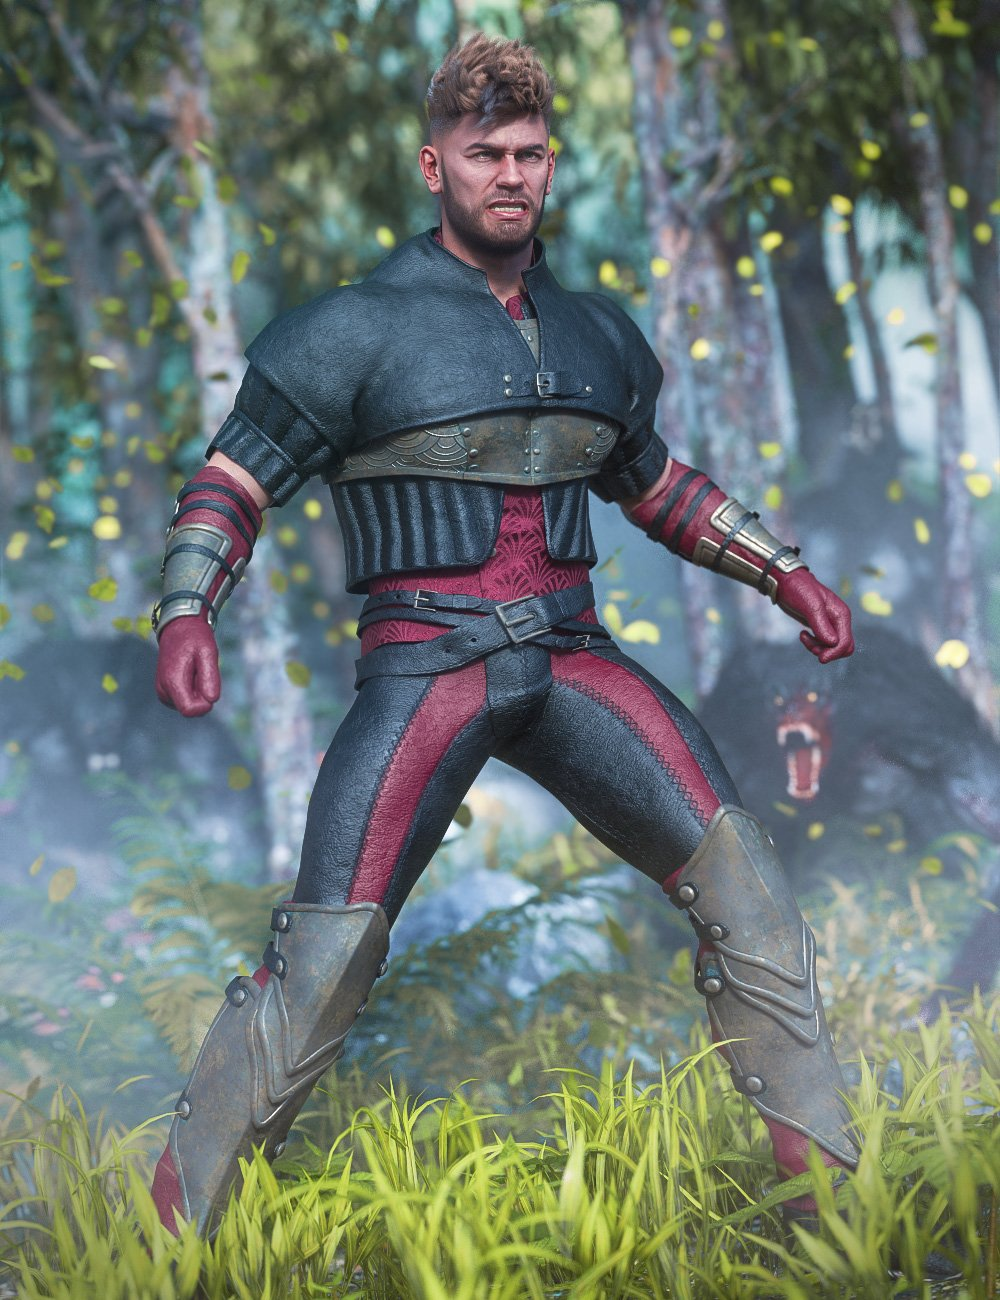 Crows Watch Outfit for Genesis 8 Male(s) by: Barbara BrundonjoelegeckoMoonscape GraphicsSade, 3D Models by Daz 3D